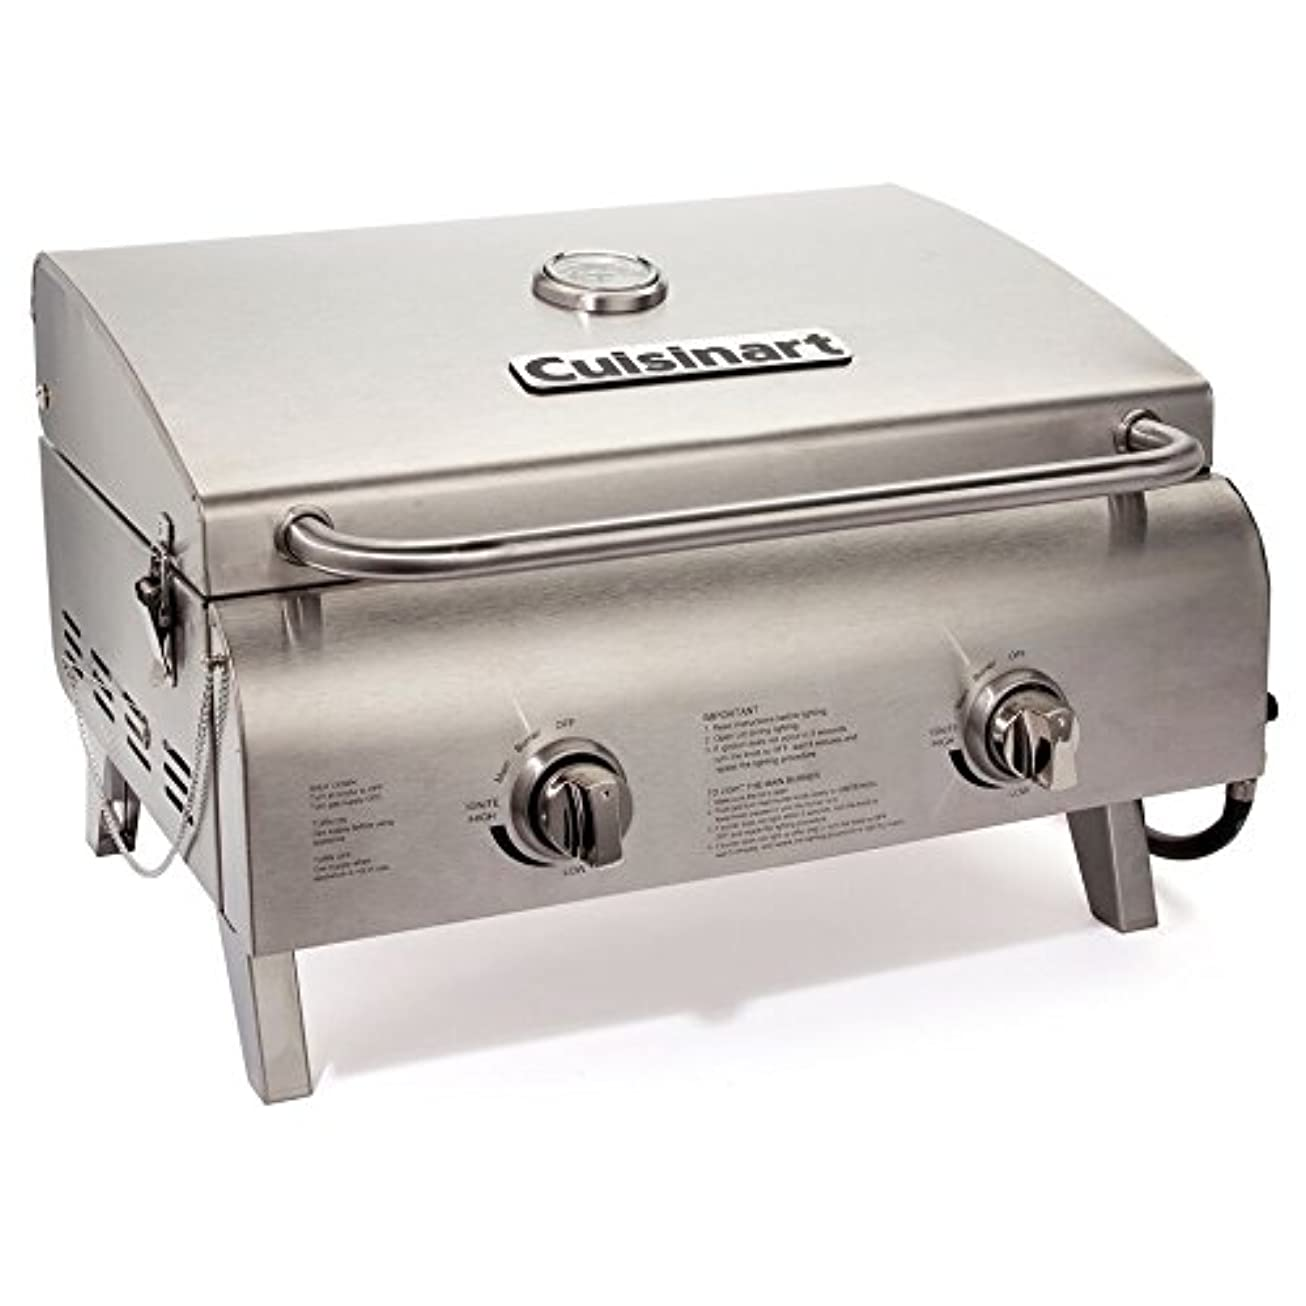 Cuisinart CGG-306 Professional Tabletop Gas Grill, Two-Burner, Stainless Steel dadletrppenm4